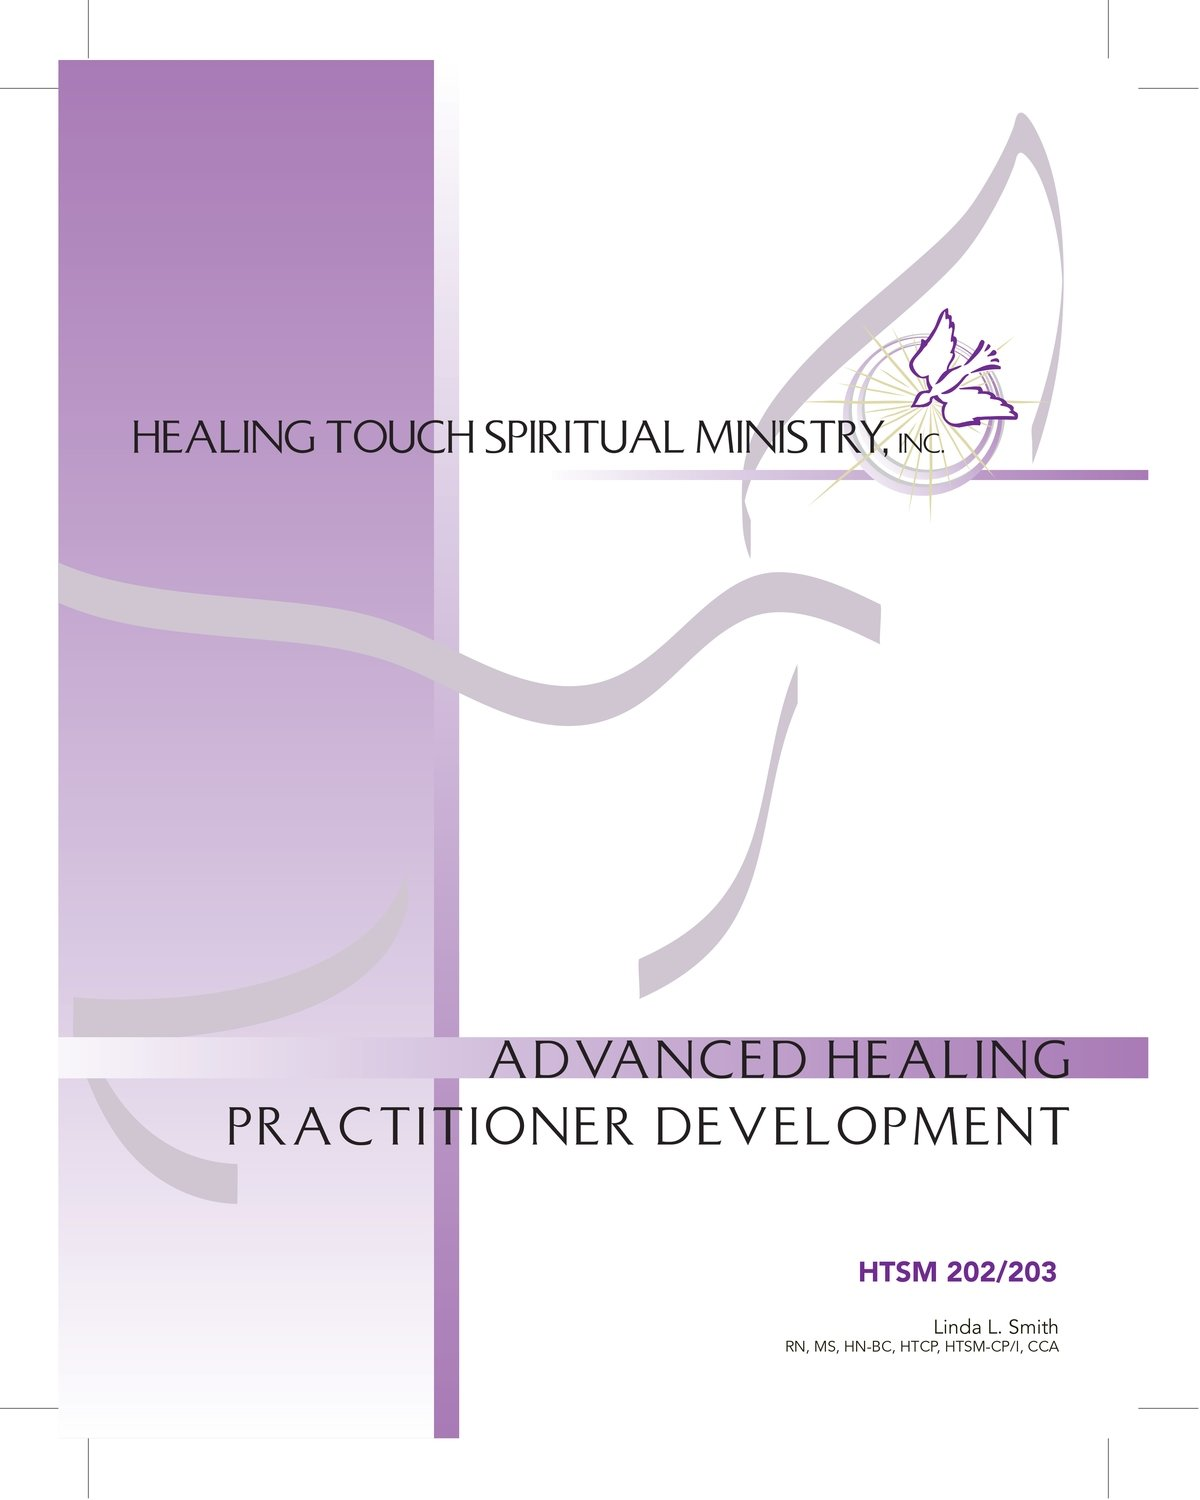 HTSM 203: Advanced Practice B - Knoxville, TN - January 21-24, 2021